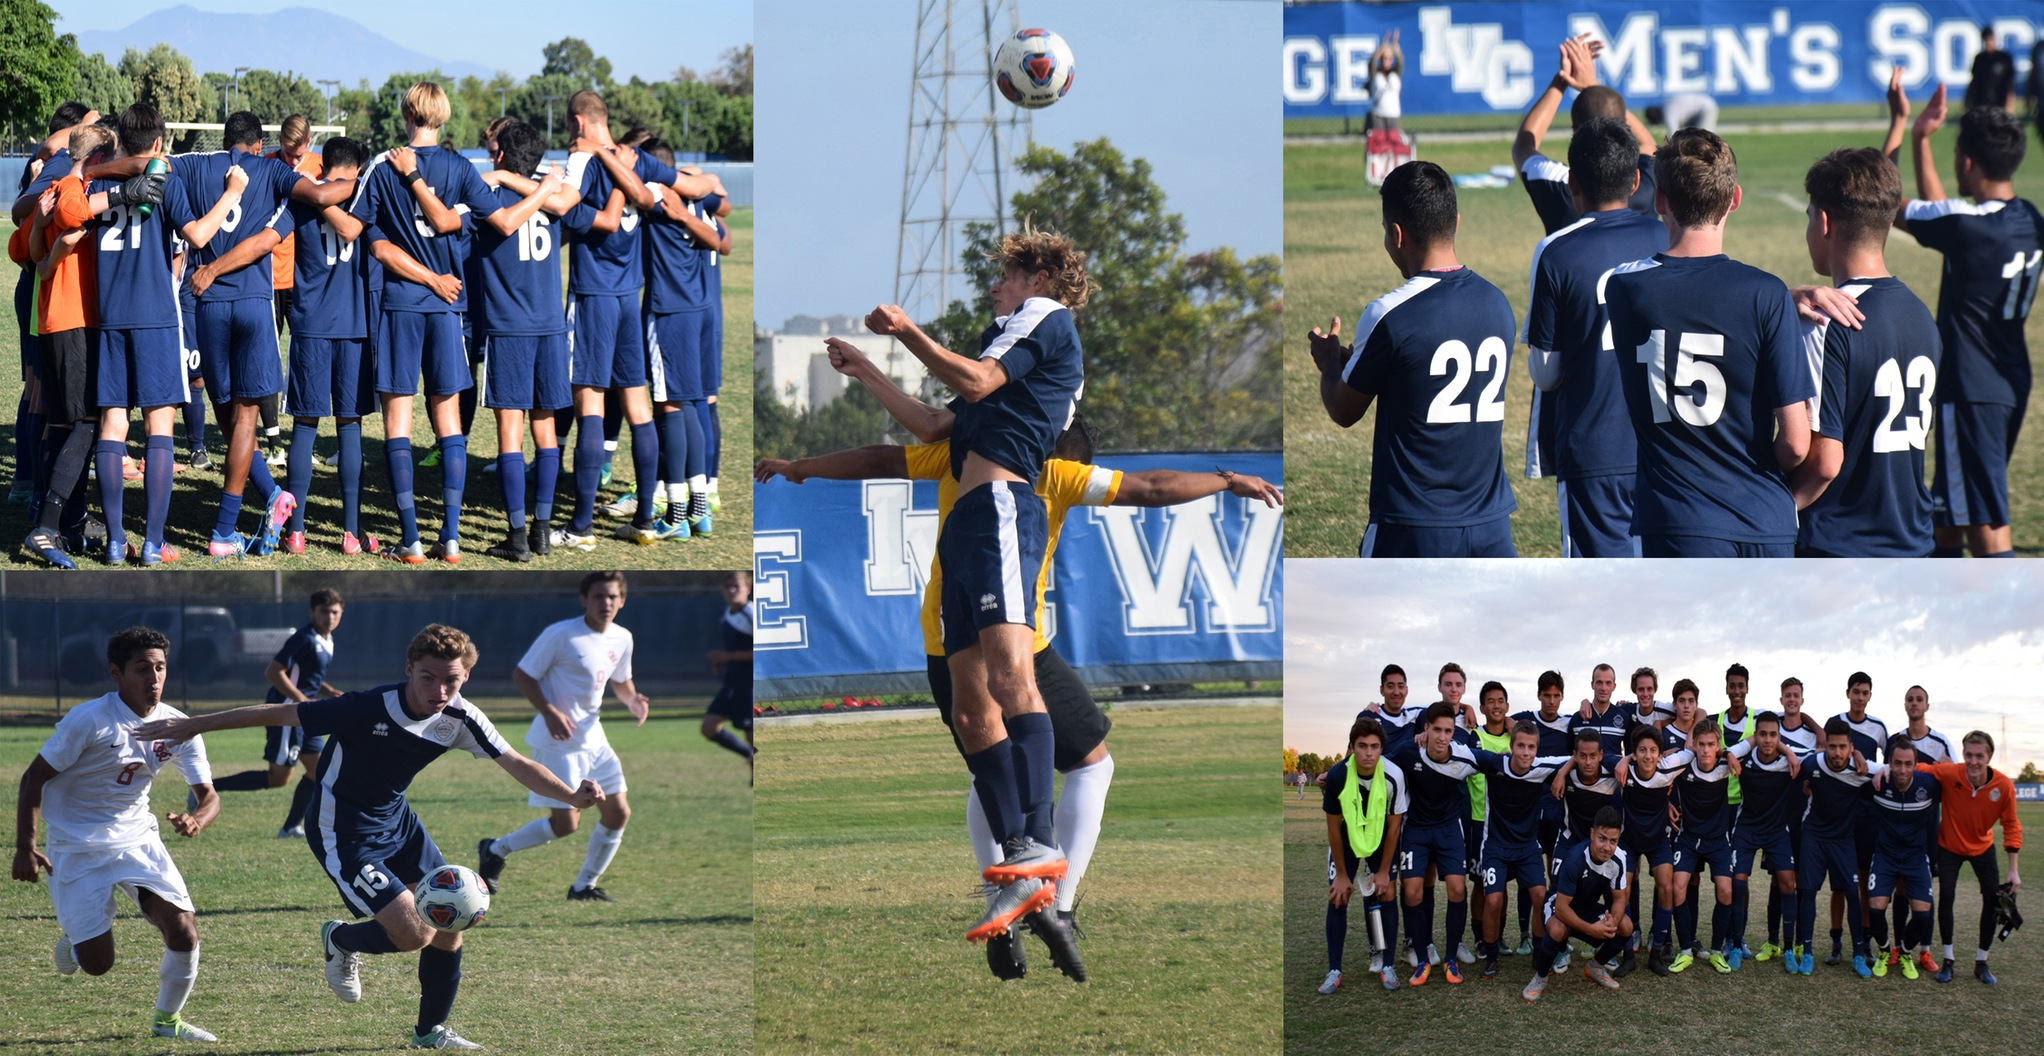 2018 Irvine Valley men's soccer schedule released